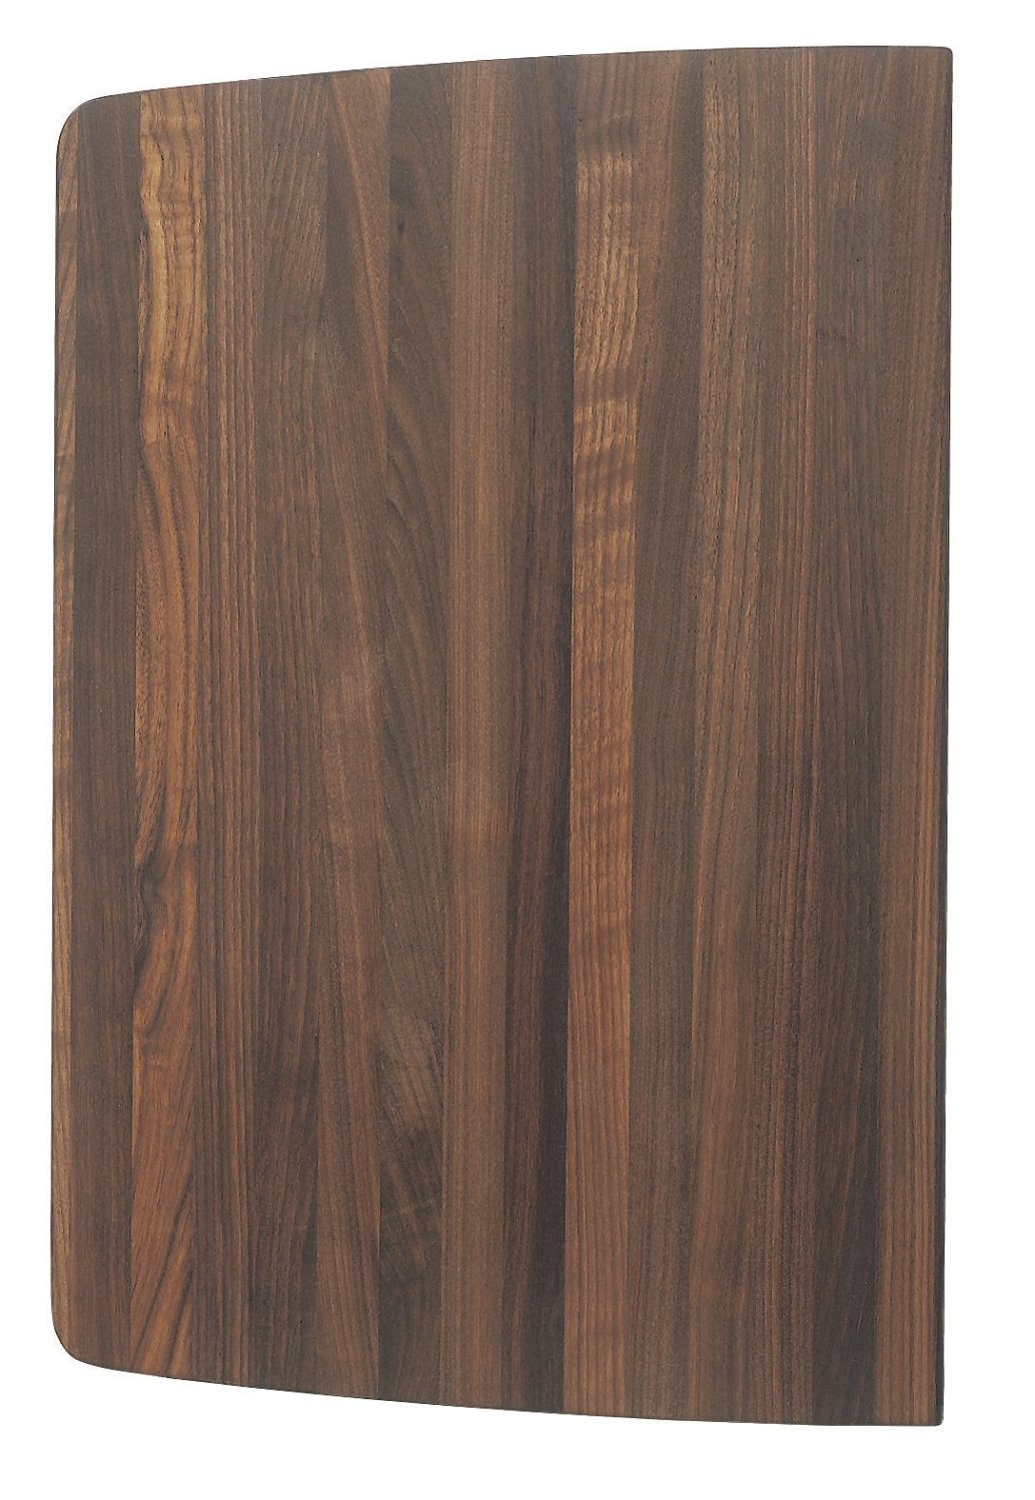 Blanco 440155 Wood Cutting Board, Fits Performa sinks 440110/106, Walnut